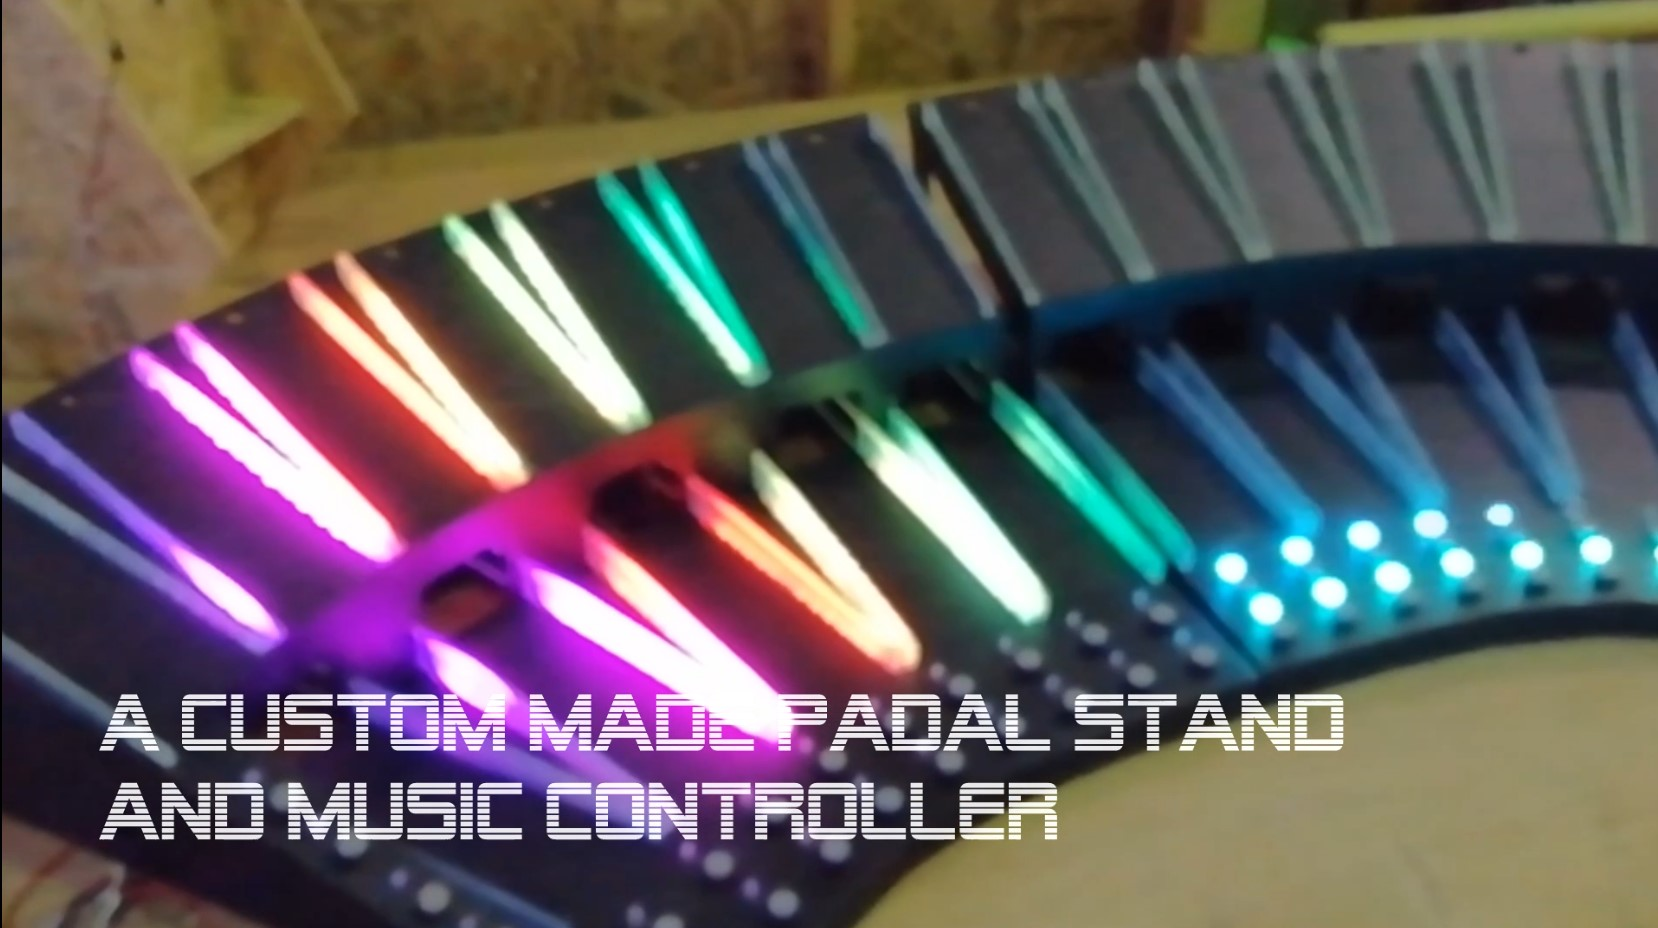 Multiple Pedals stand / music controller